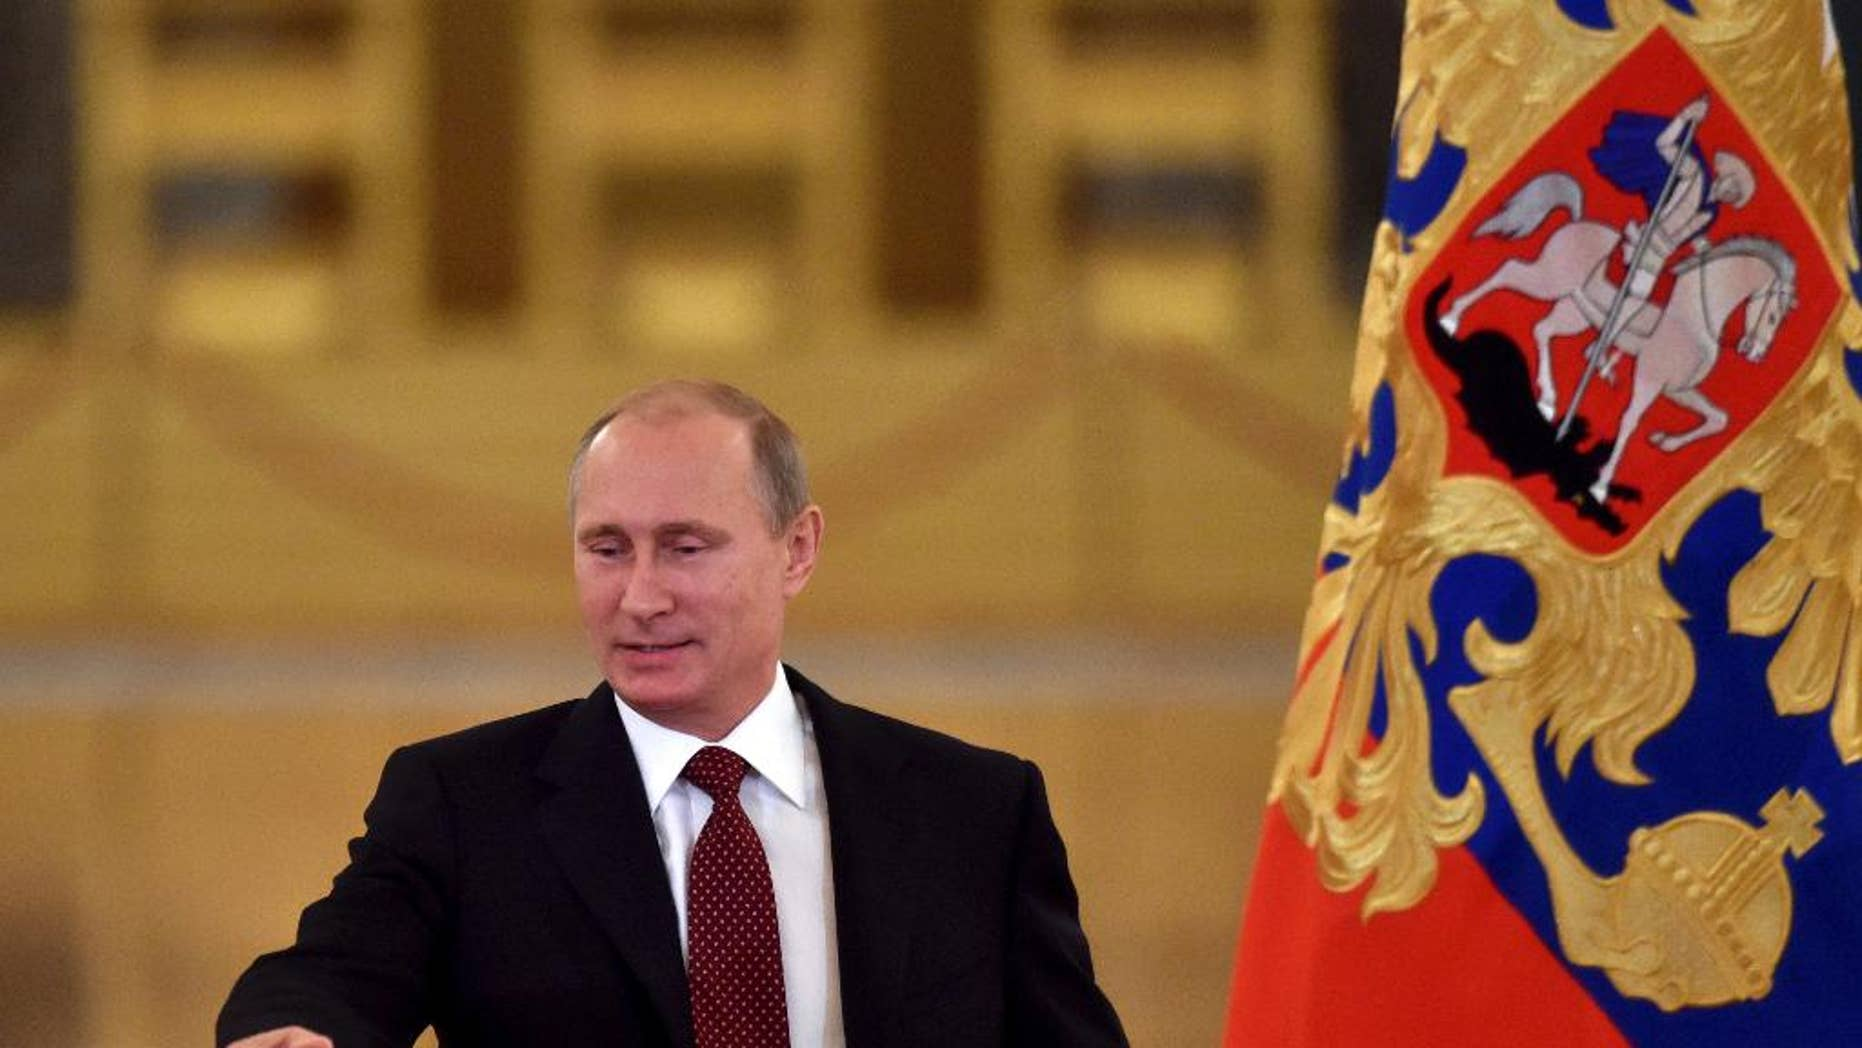 Russian President Vladimir Putin arrives prior to heading the Human Rights Council in Moscow's Kremlin, Russia, Tuesday, Oct. 14, 2014. (AP Photo/Kirill Kydryavtsev, Pool)